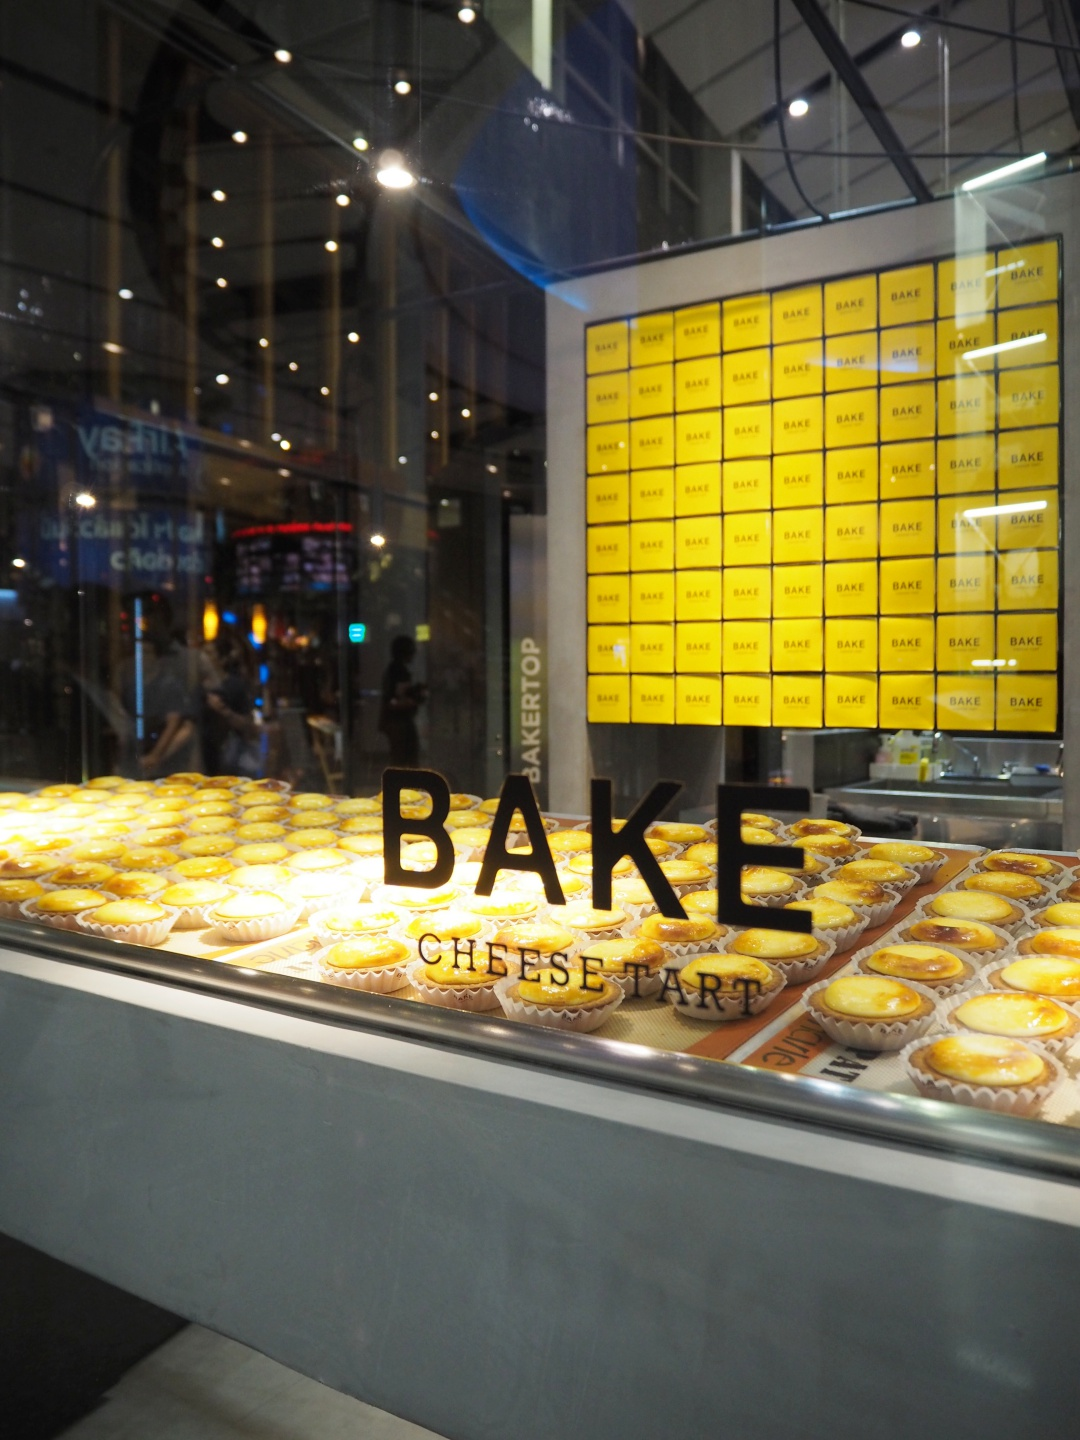 Bangkok Central World BAKE Cheese Tart | joanne-khoo.com